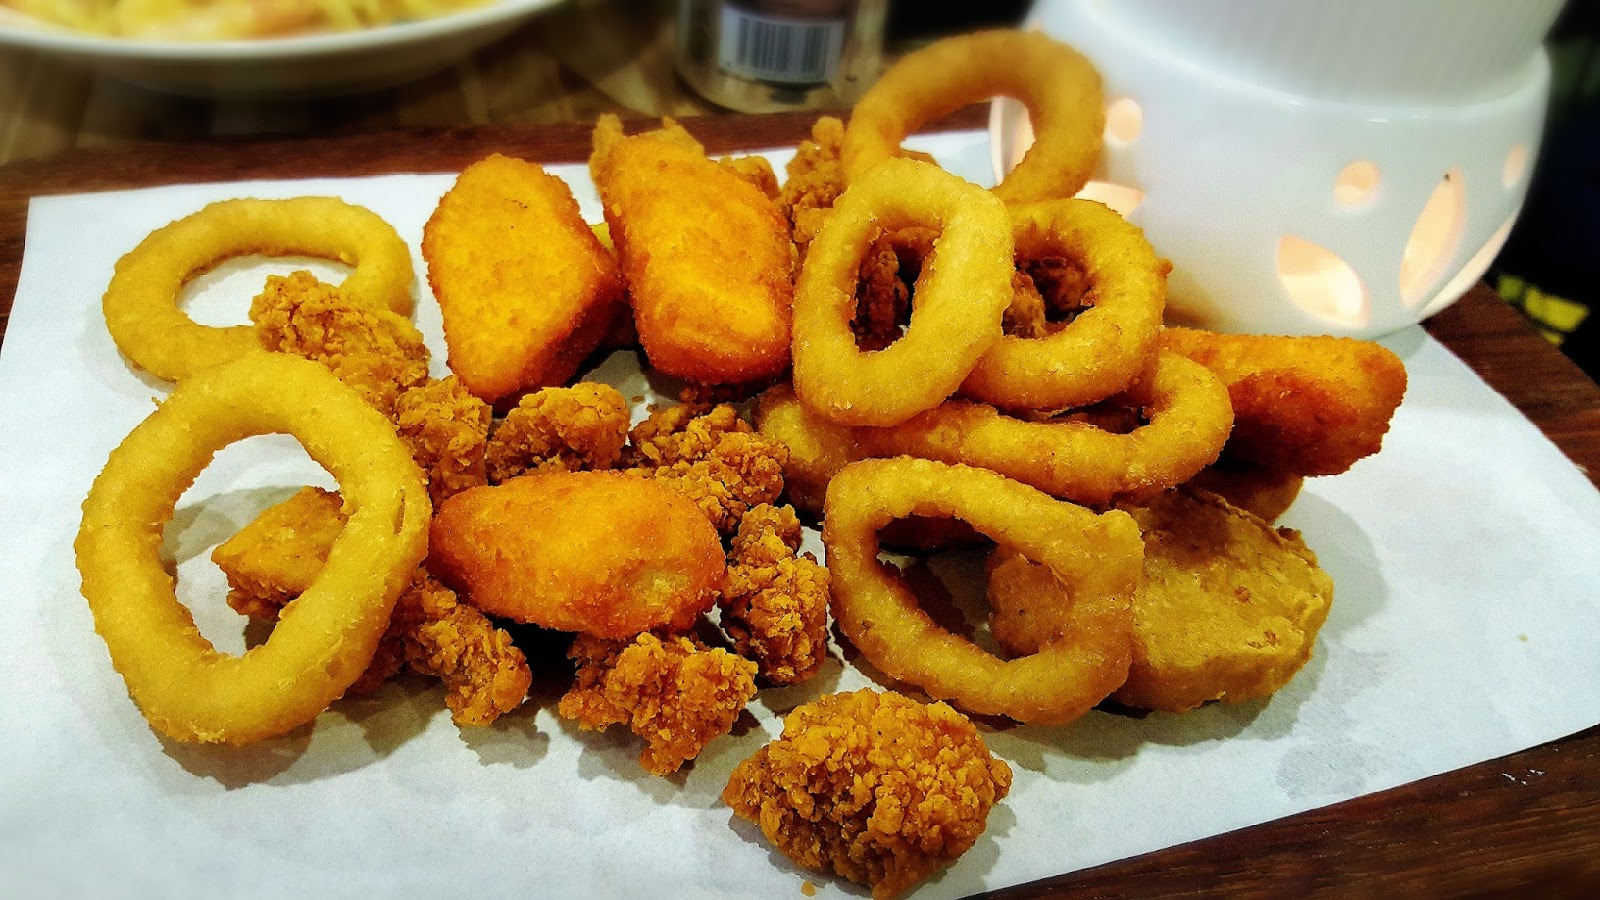 Food review eighteen chefs singapore - In The Platter Are All My Favourite I M A Fried Food Person Calamari And Onion Rings Pop Corn Chicken And Chicken Chunks And Fish Nuggets